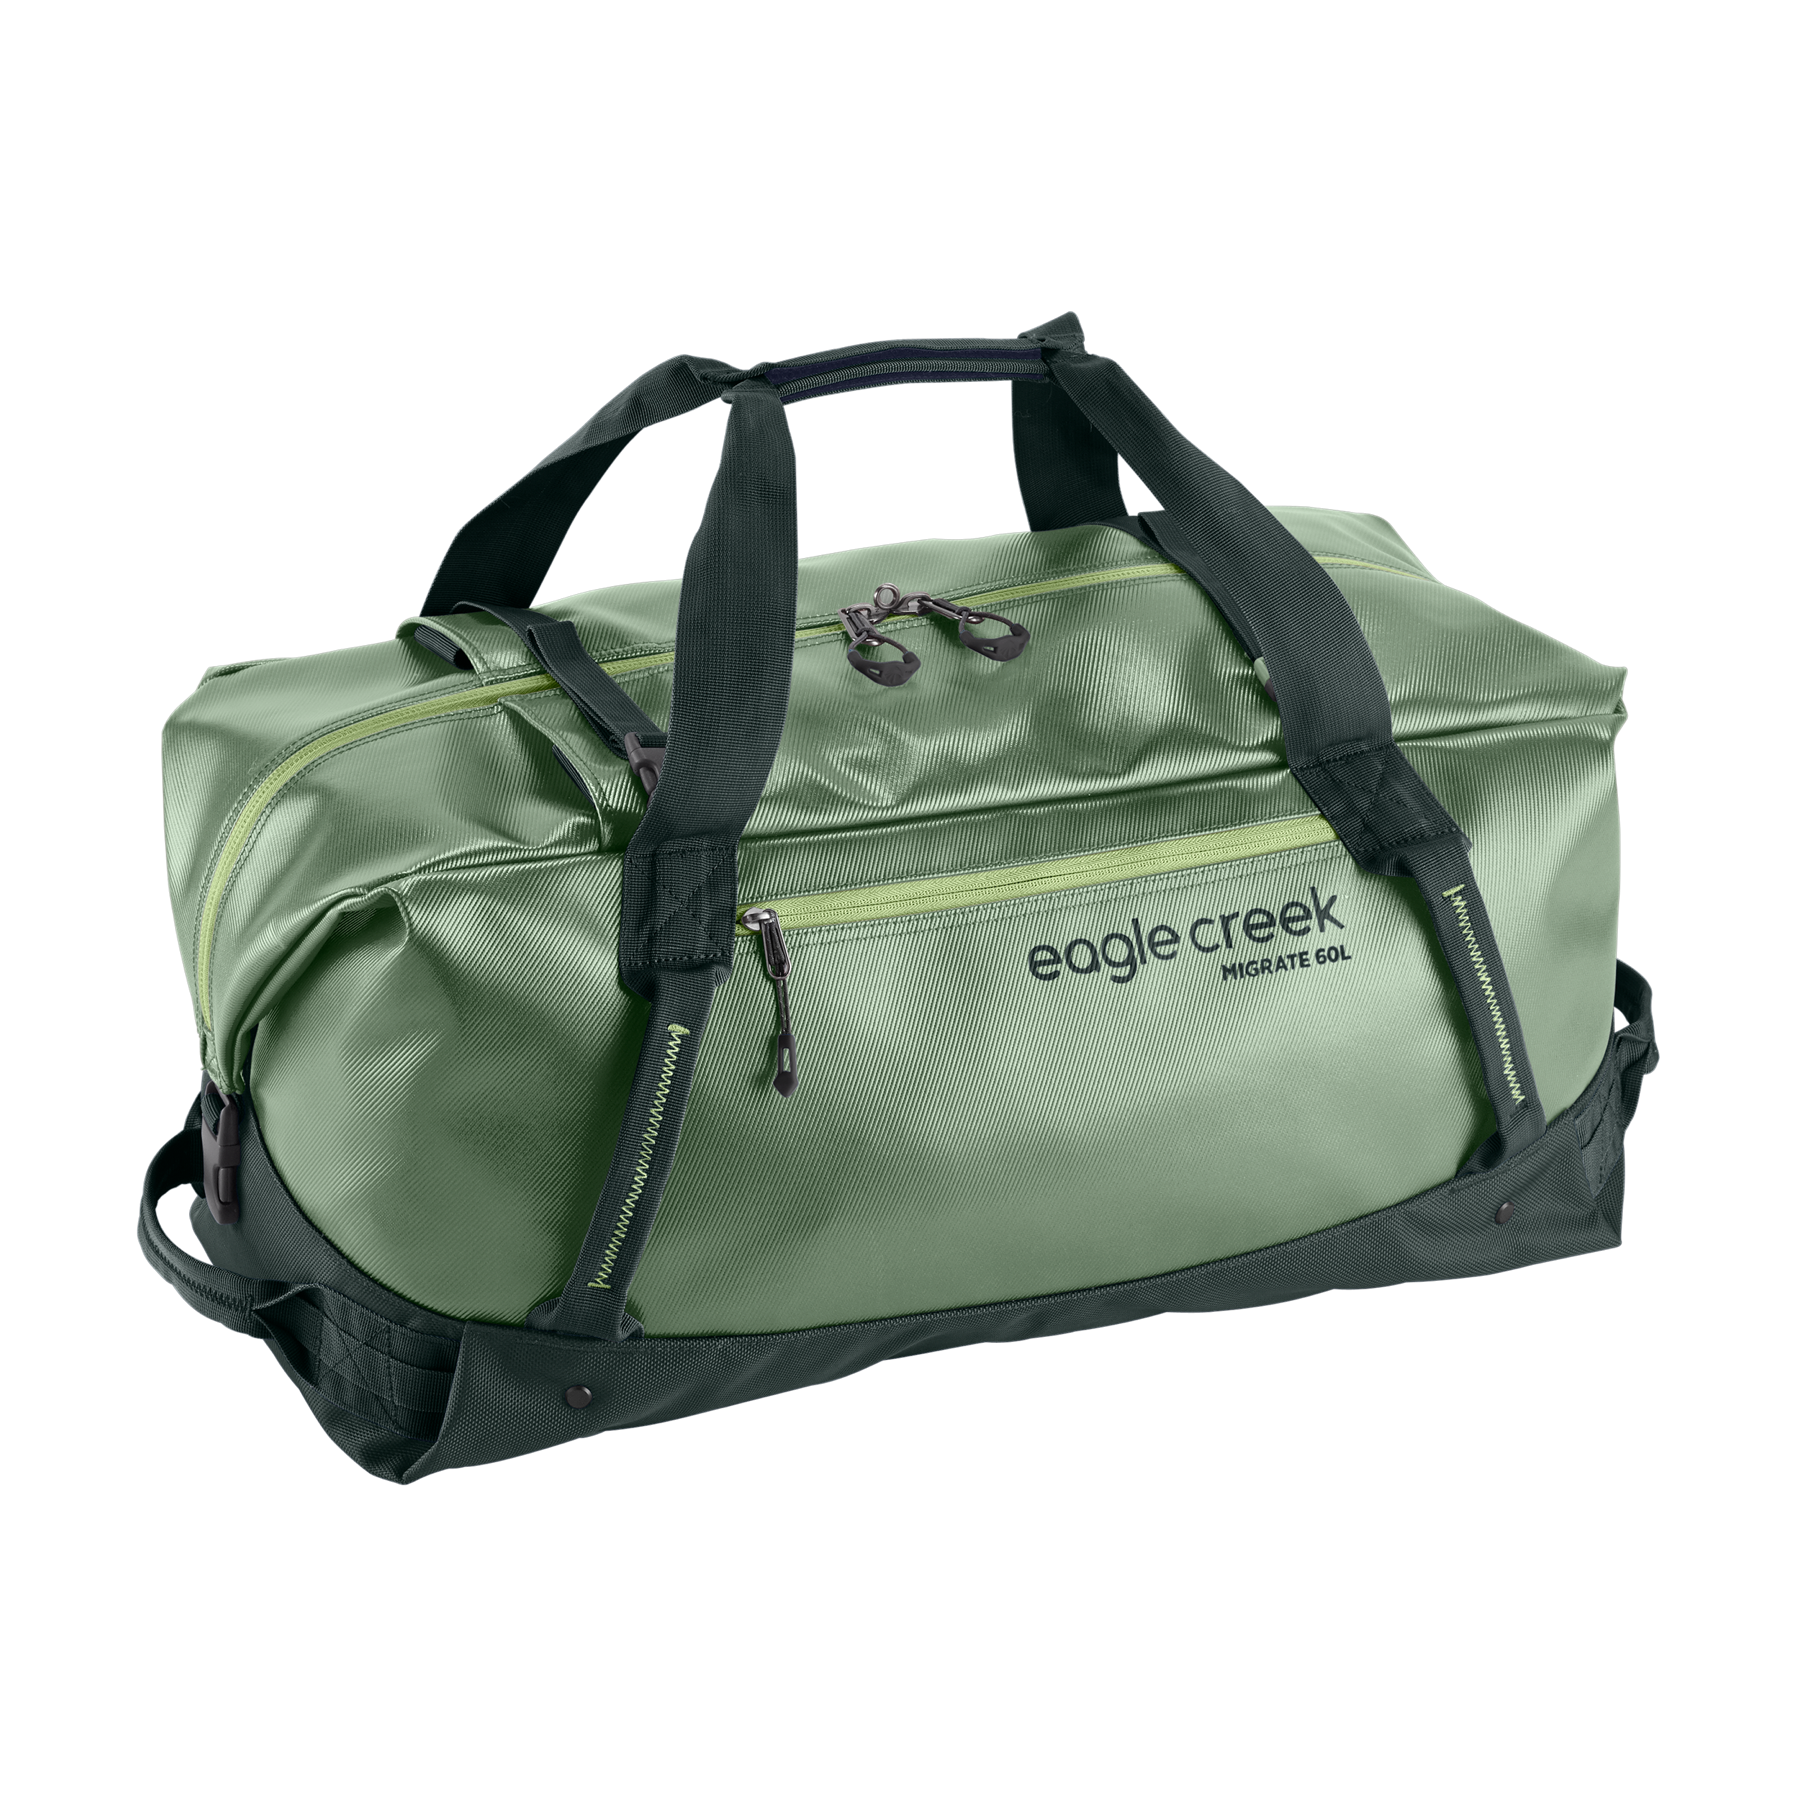 EAGLE CREEK MIGRATE DUFFLE 60L